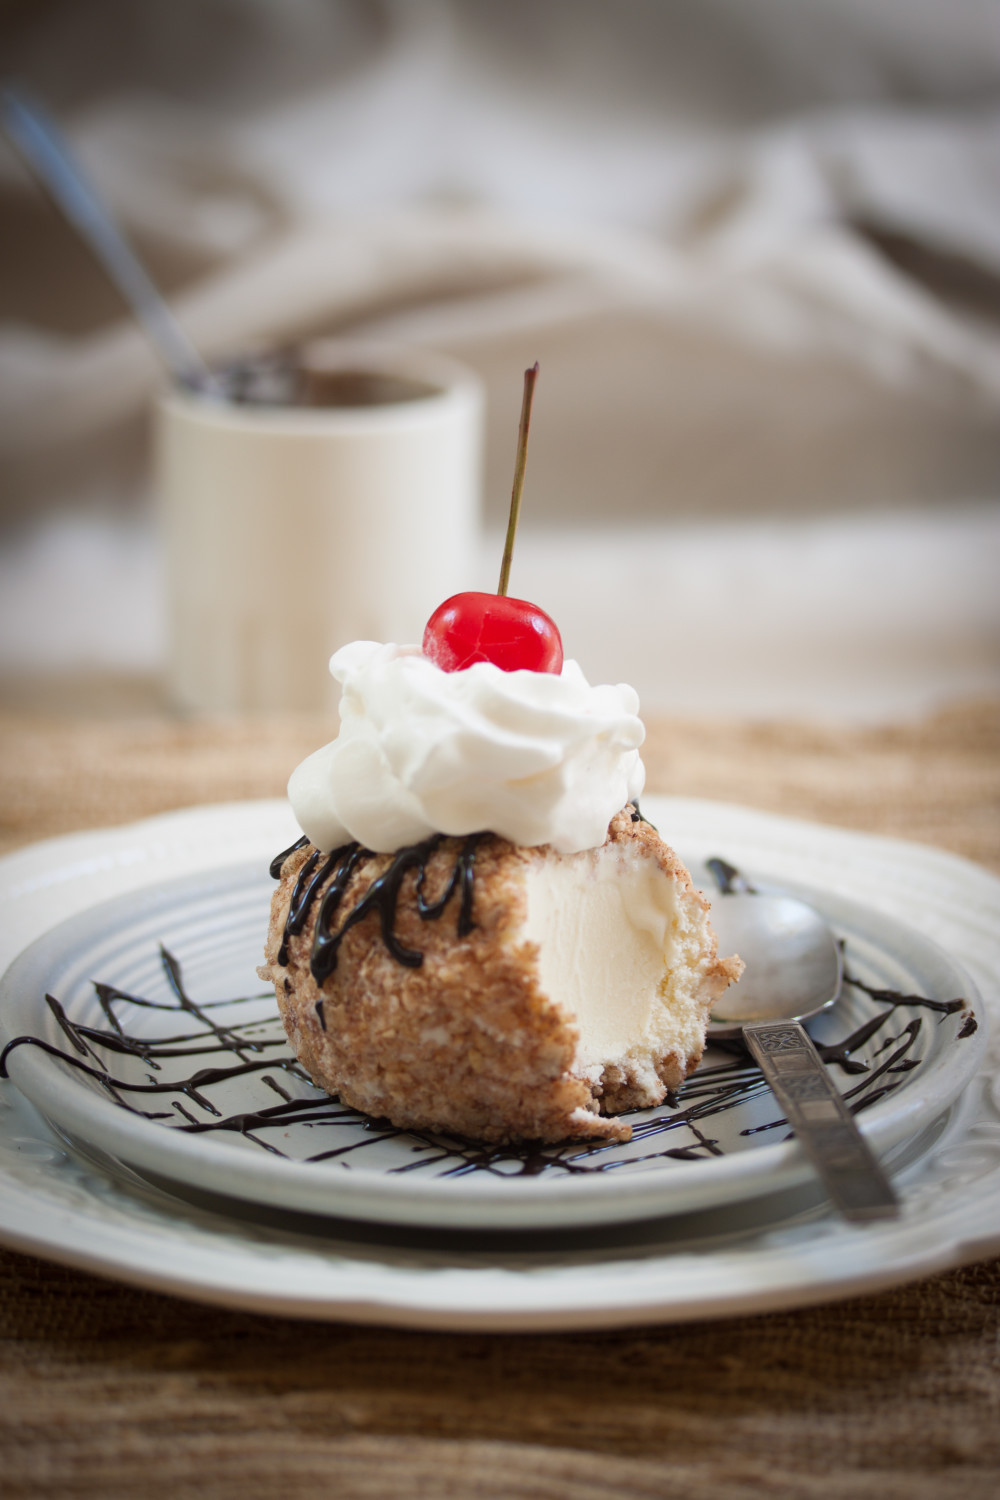 Mexican (not) Fried Ice Cream